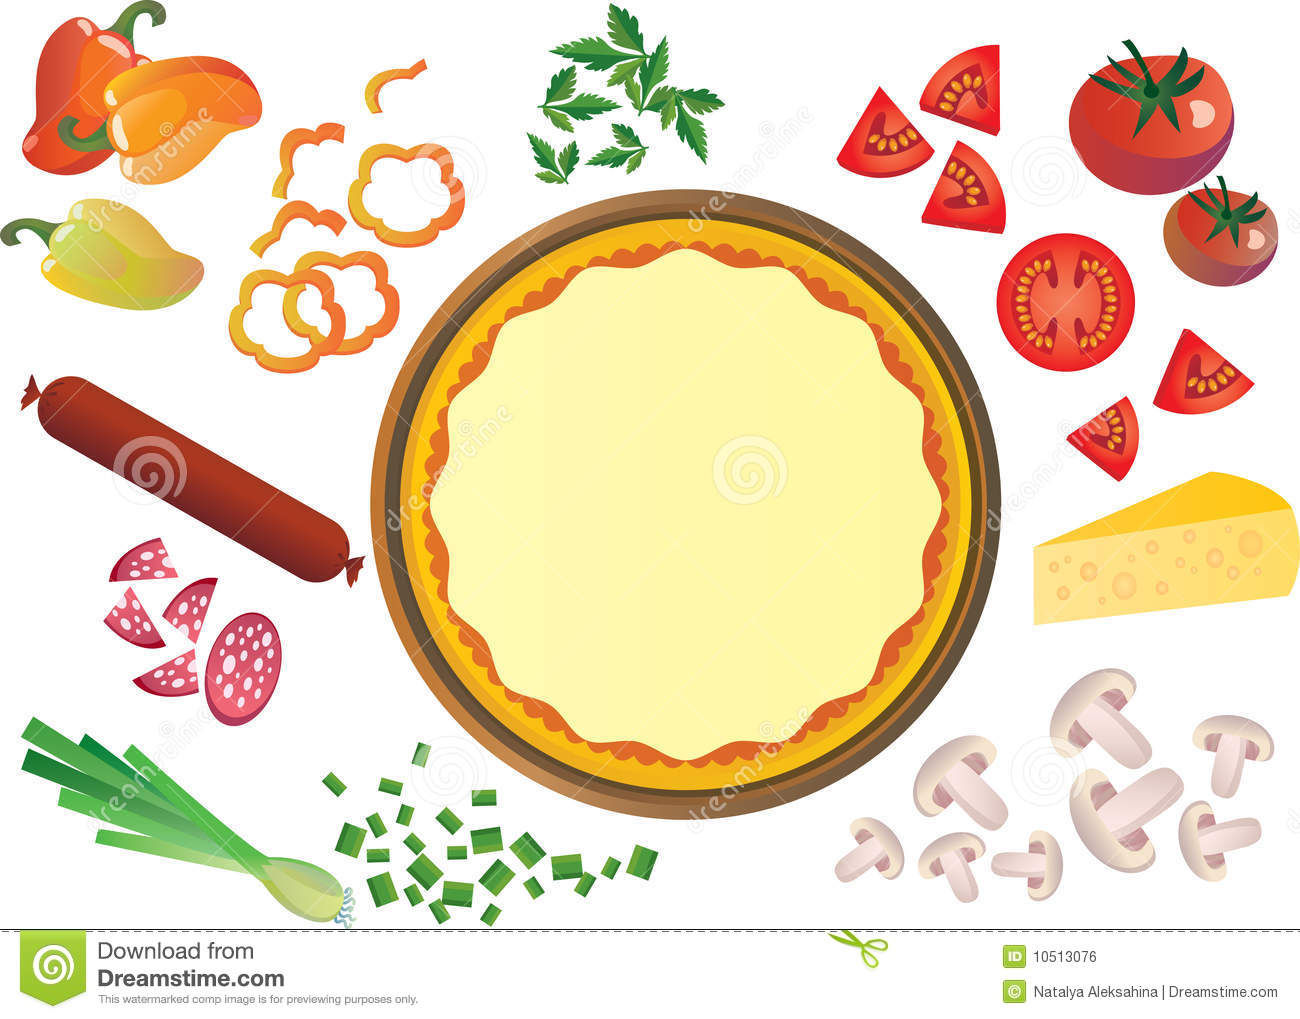 Pizza base clipart.